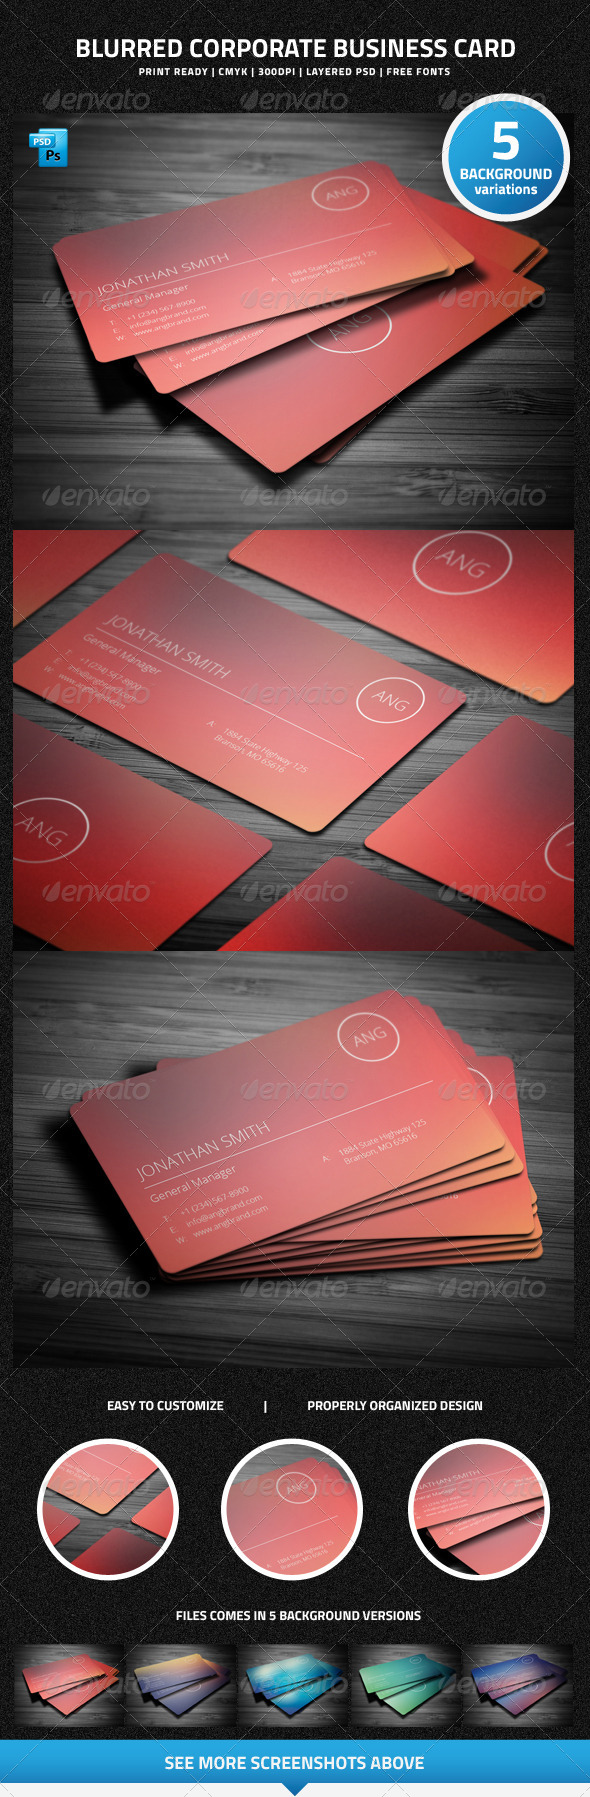 Blurred Corporate Business Card - 22 - Creative Business Cards